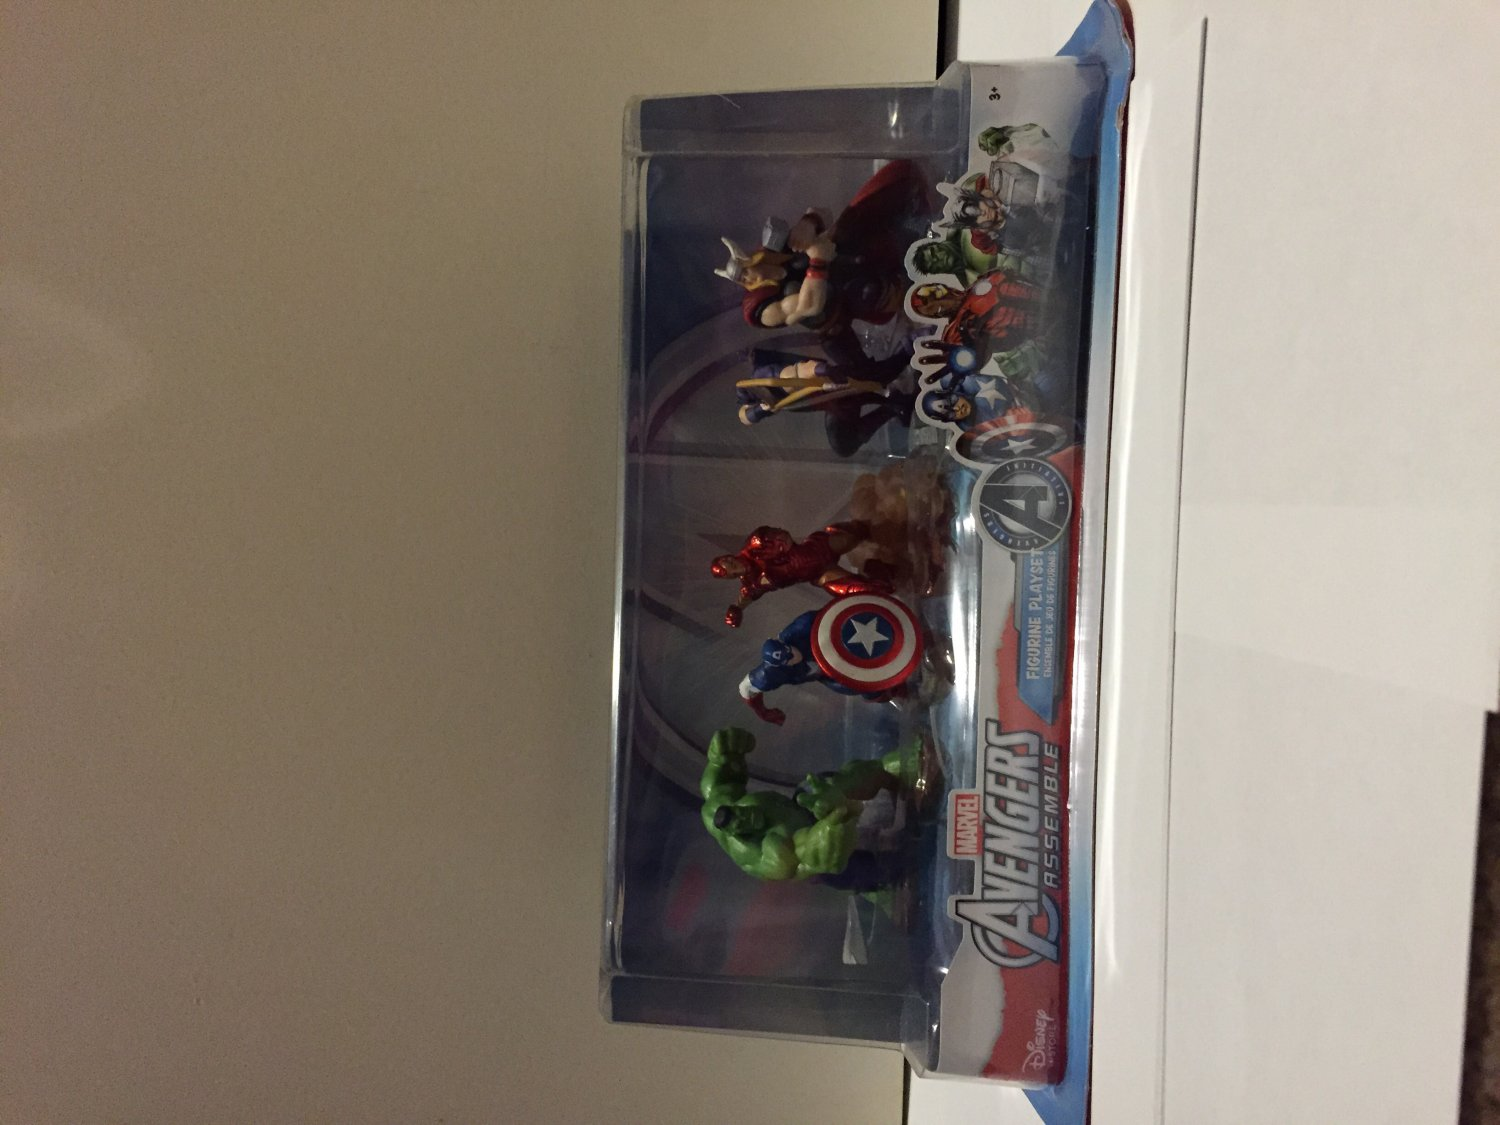 Disney Marvel Avengers Assemble Exclusive 5-piece Figurine Playset New in Box